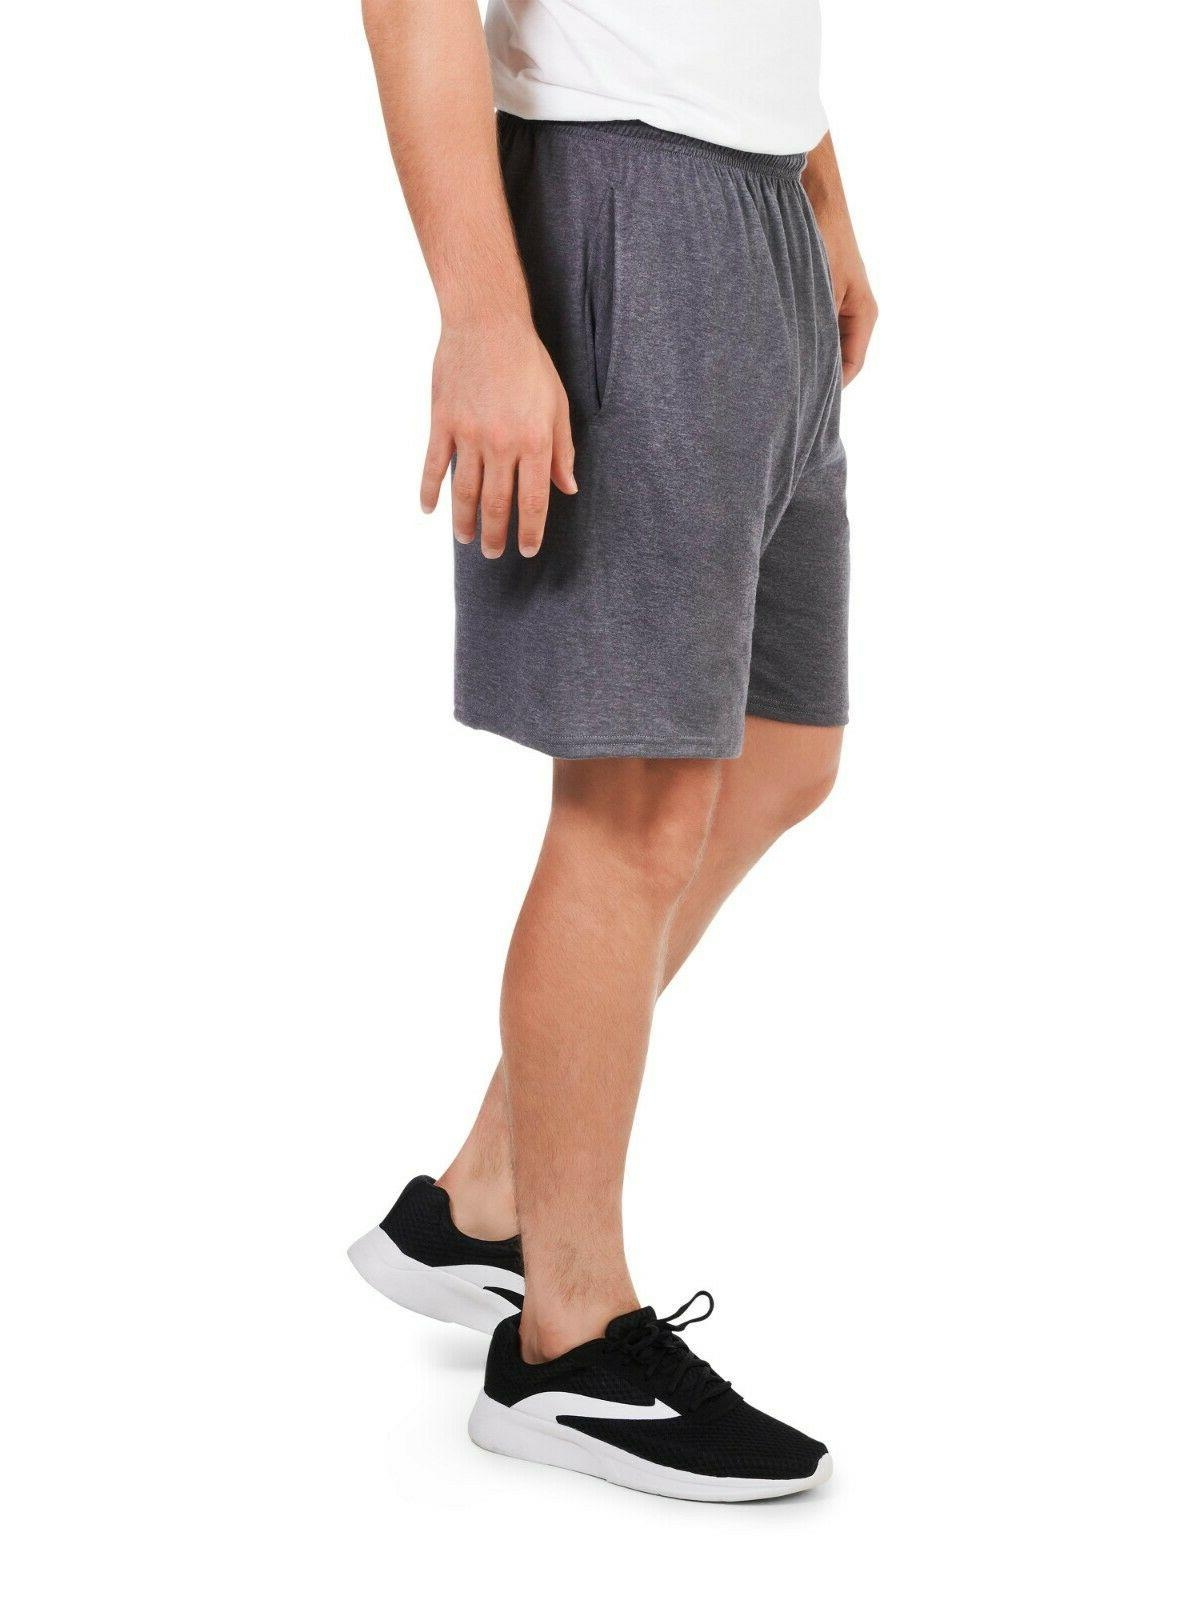 Fruit Shorts Charcoal With Pockets S&4X